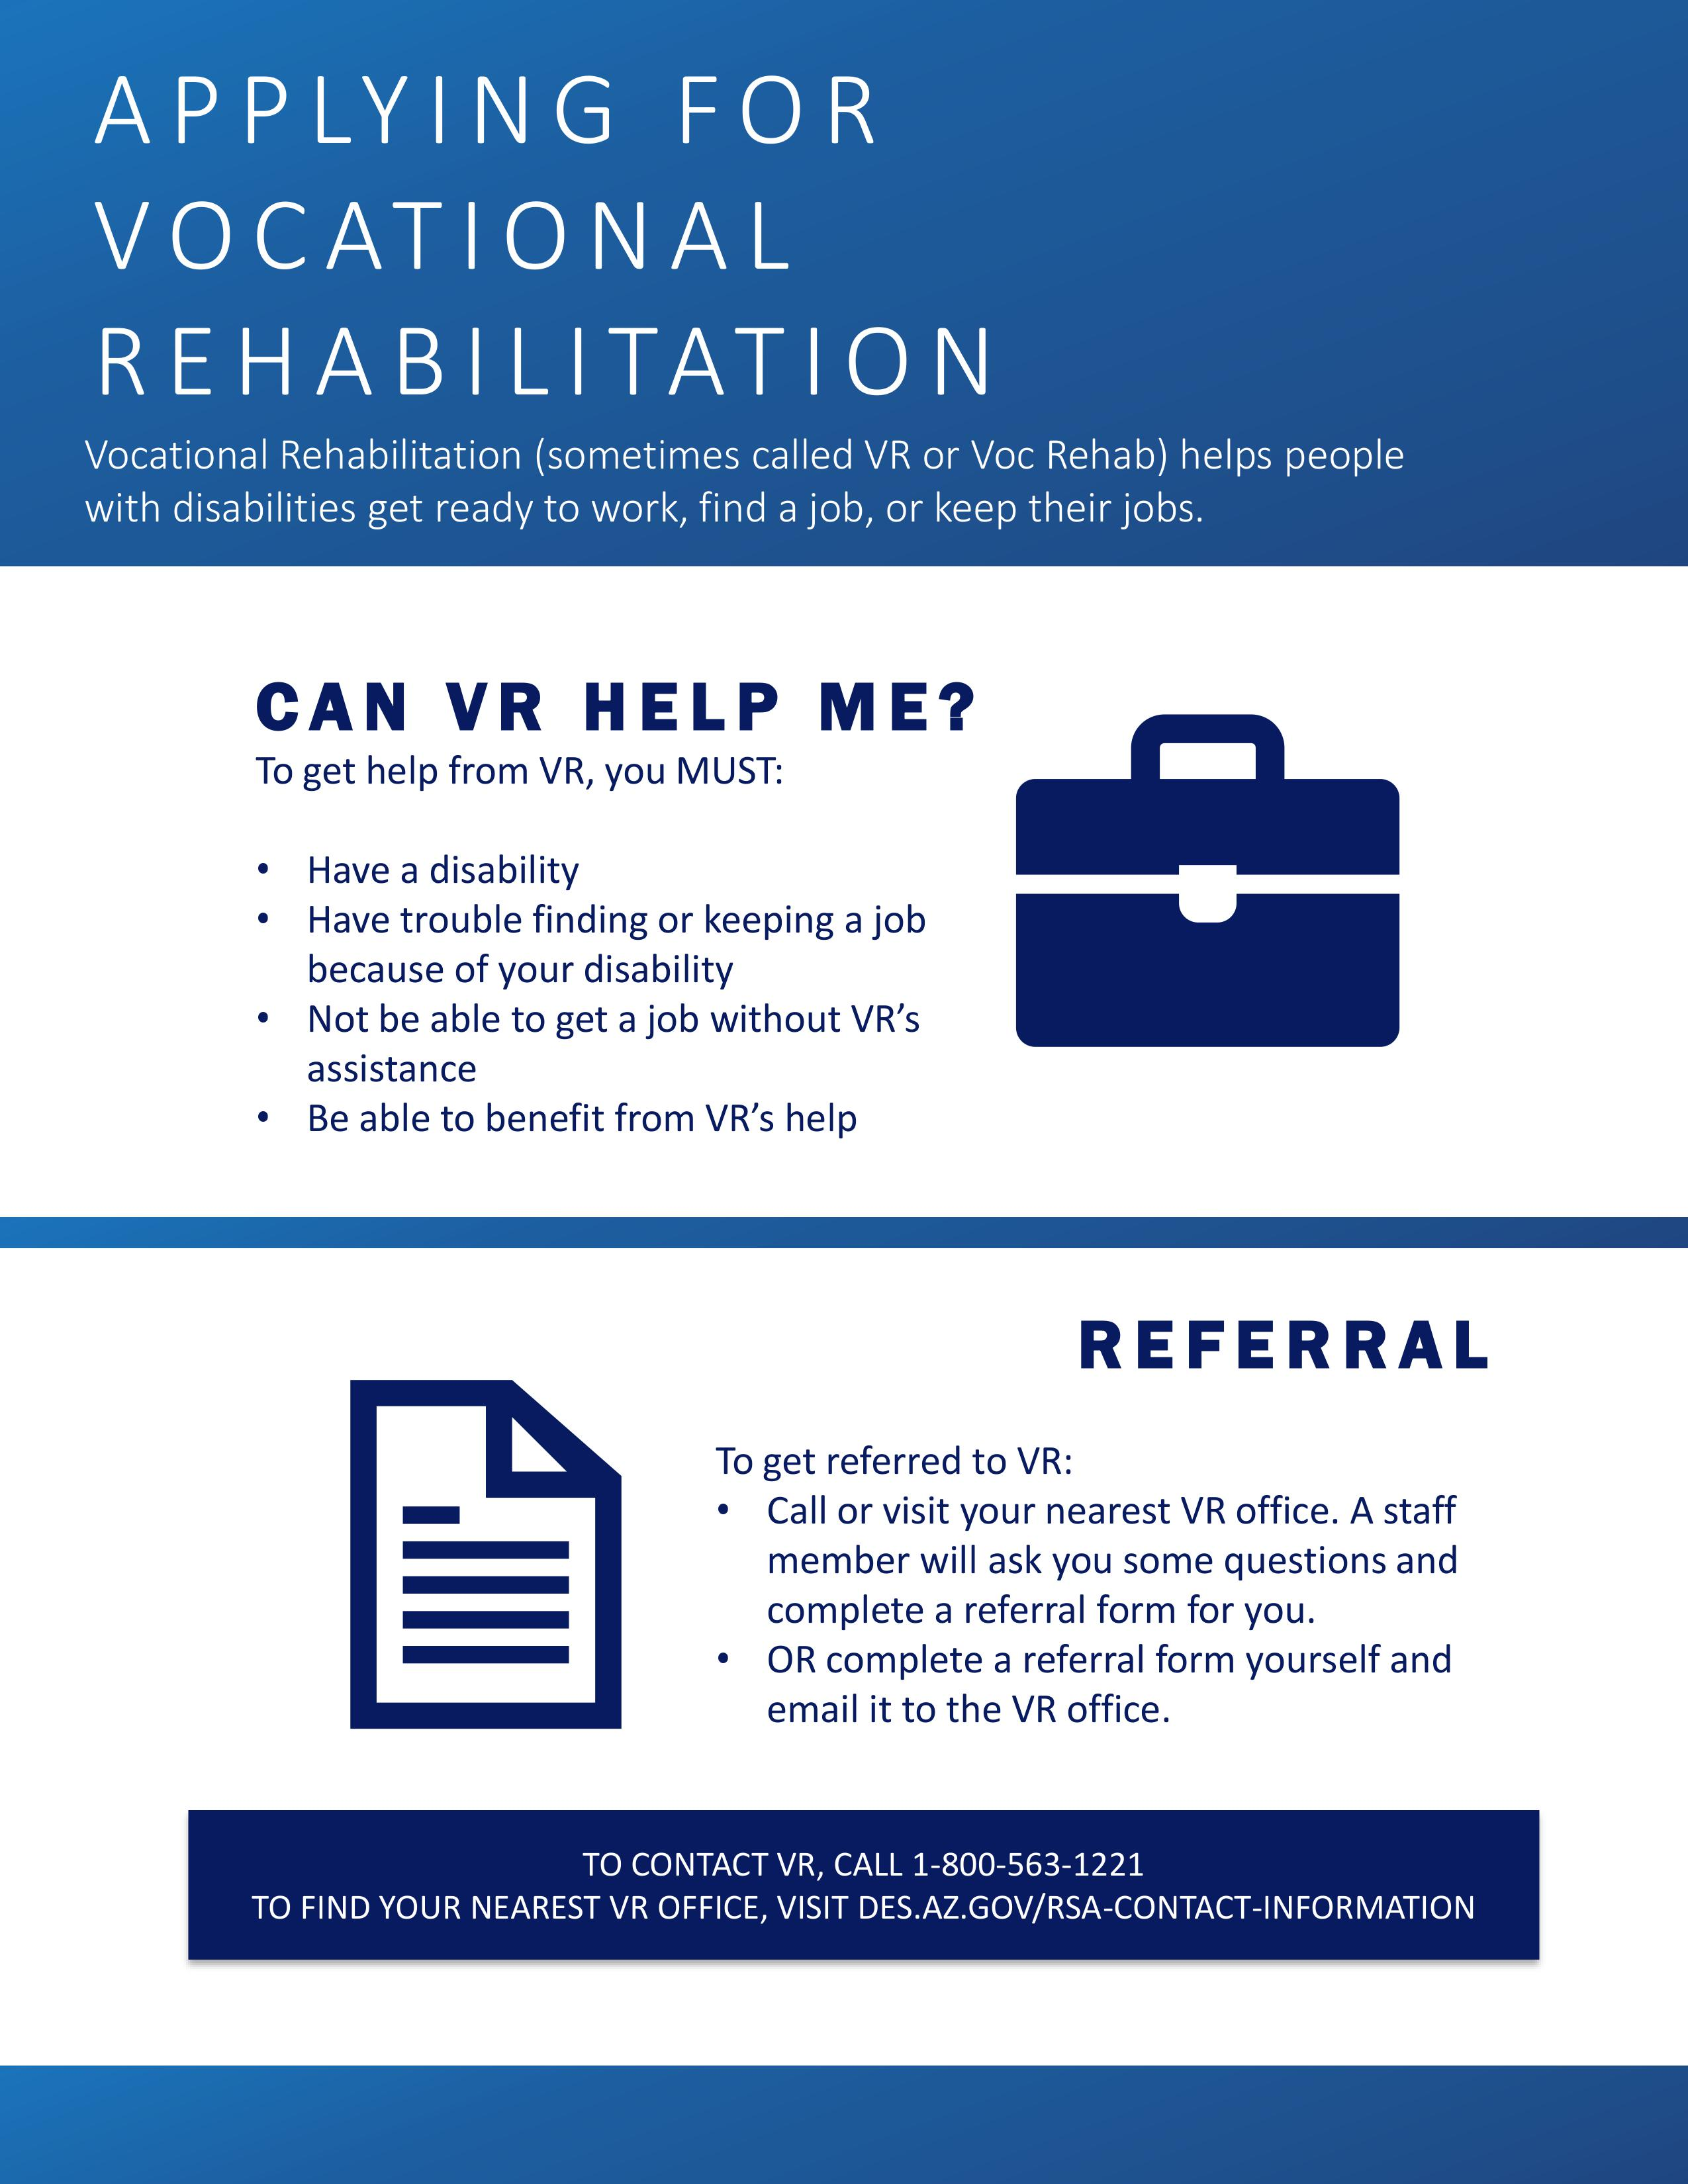 VR Eligibility and Referral Image